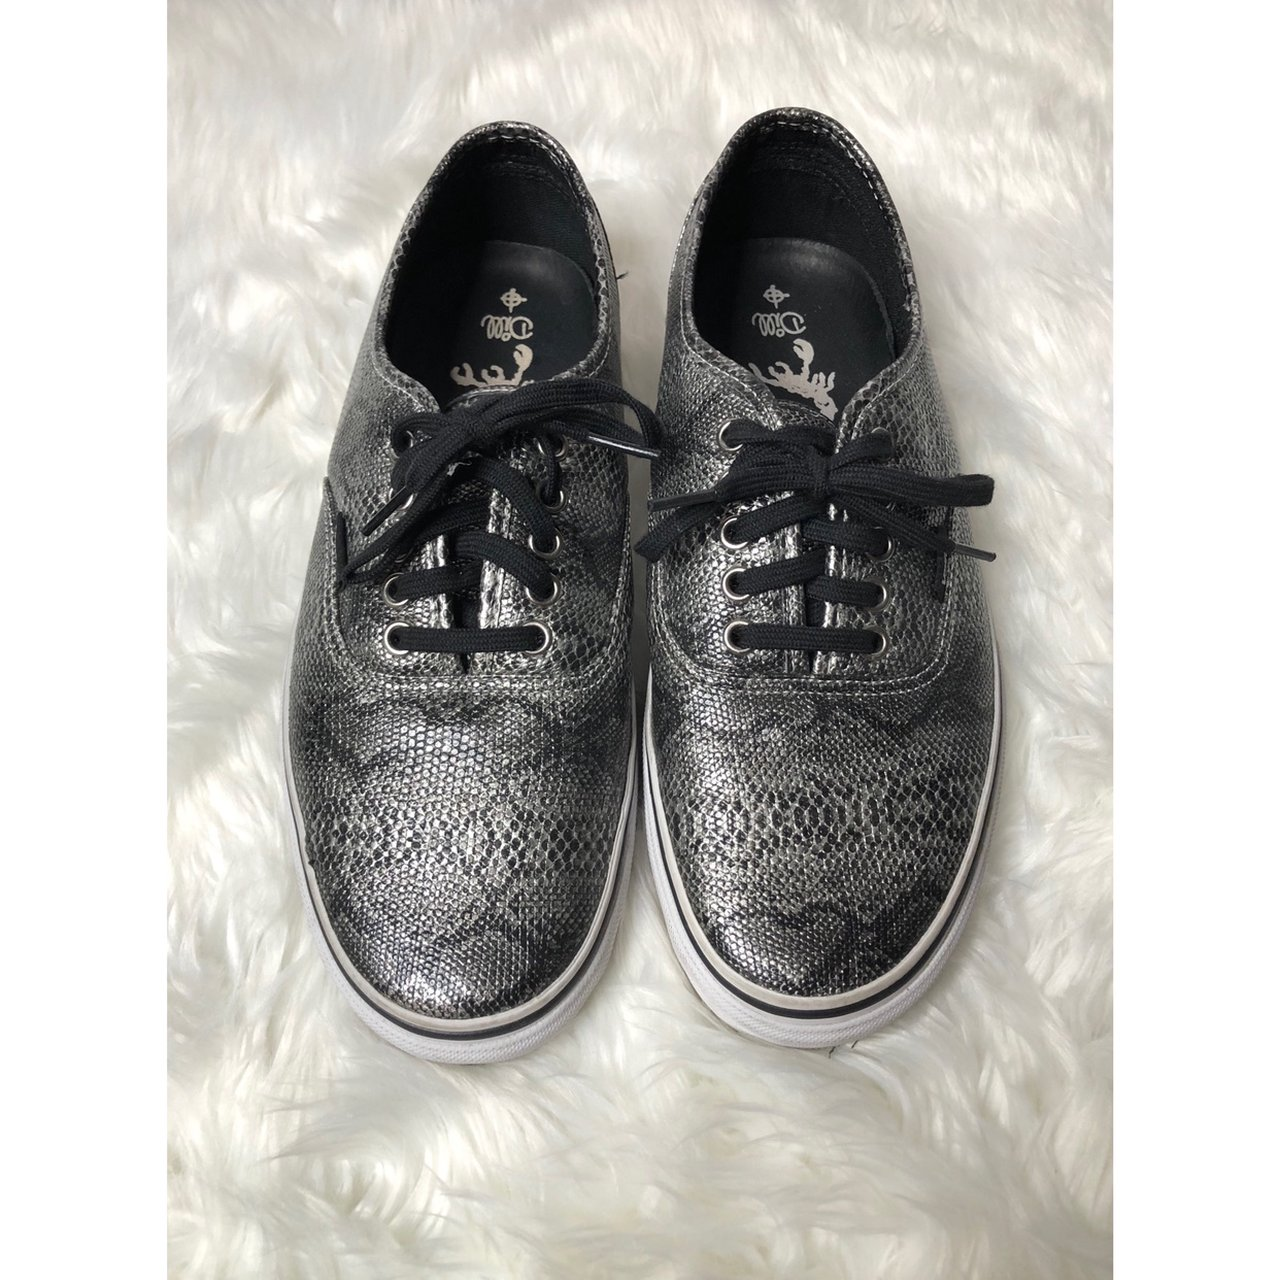 8d4390e10bc6 Vans jason dill snakeskin shoes size o box any depop jpg 1280x1280 Jason  dill shoes